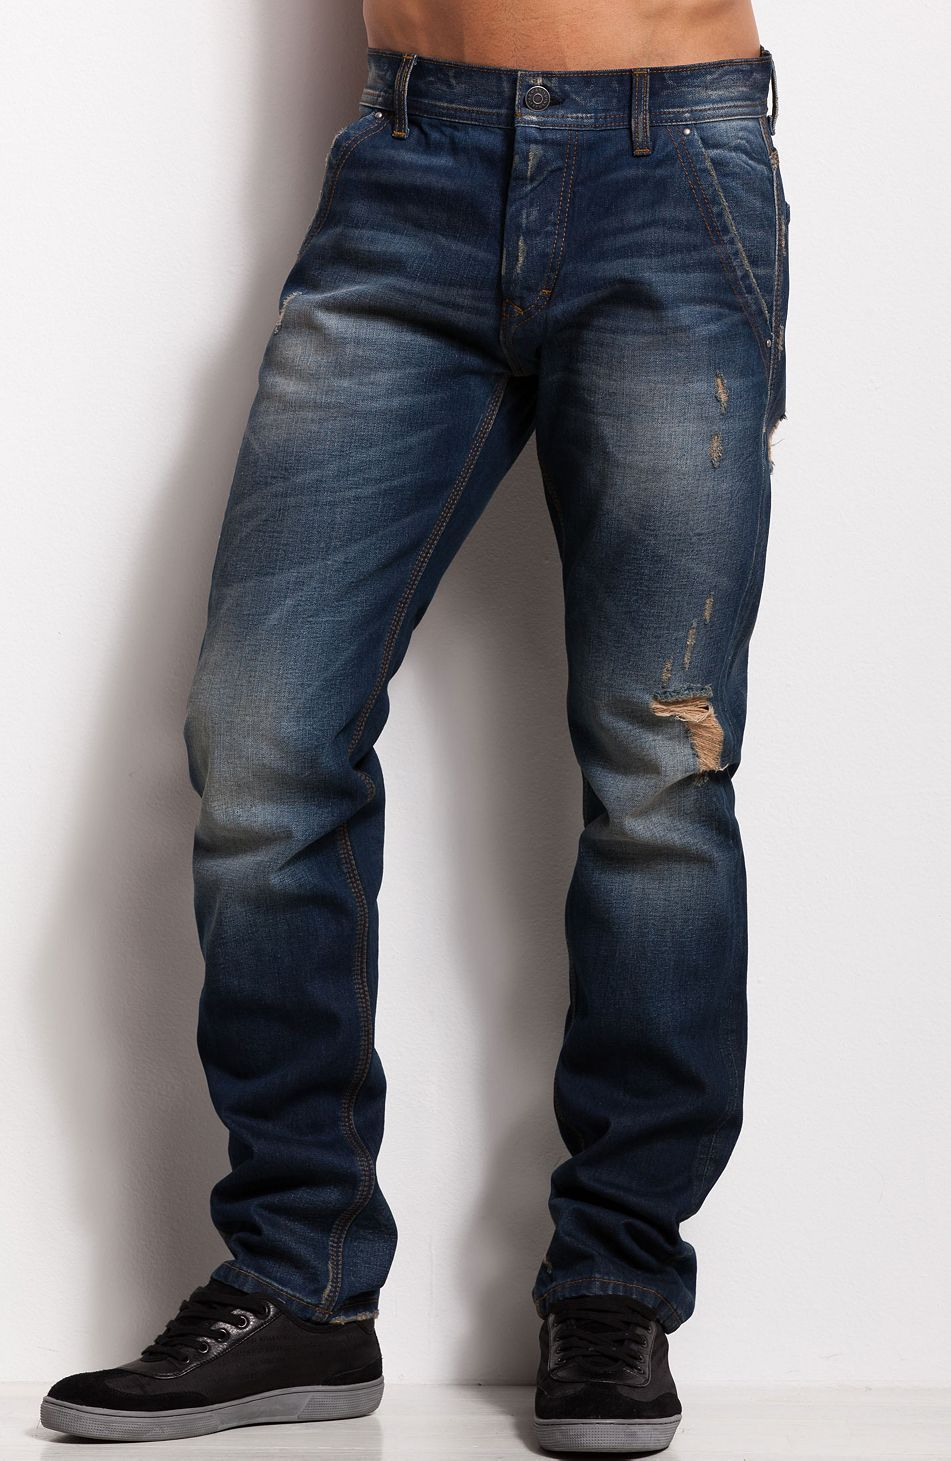 ea294faecda7 THOSE SHOES J66 - Worn Destroyed JeanOnline Exclusive - New Arrivals - Mens  - Armani Exchange